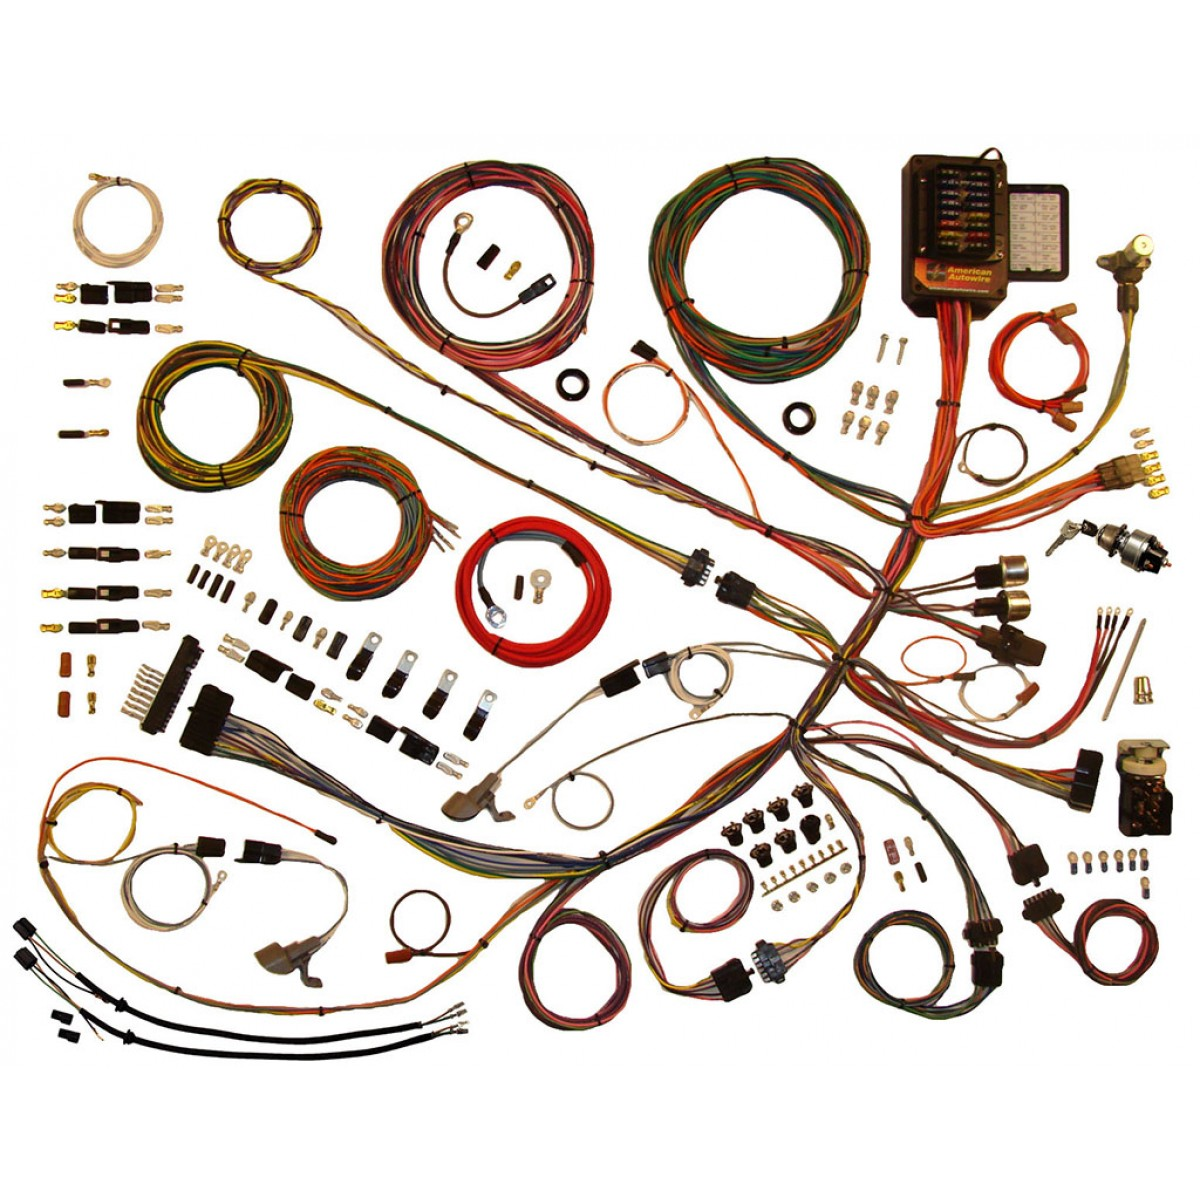 complete wiring harness kit 1953 1956 ford f100 part 510303 ford truck wiring harness f100 1953 1956 ford f100 wiring harness complete wiring harness kit ford wiring harness at edmiracle.co